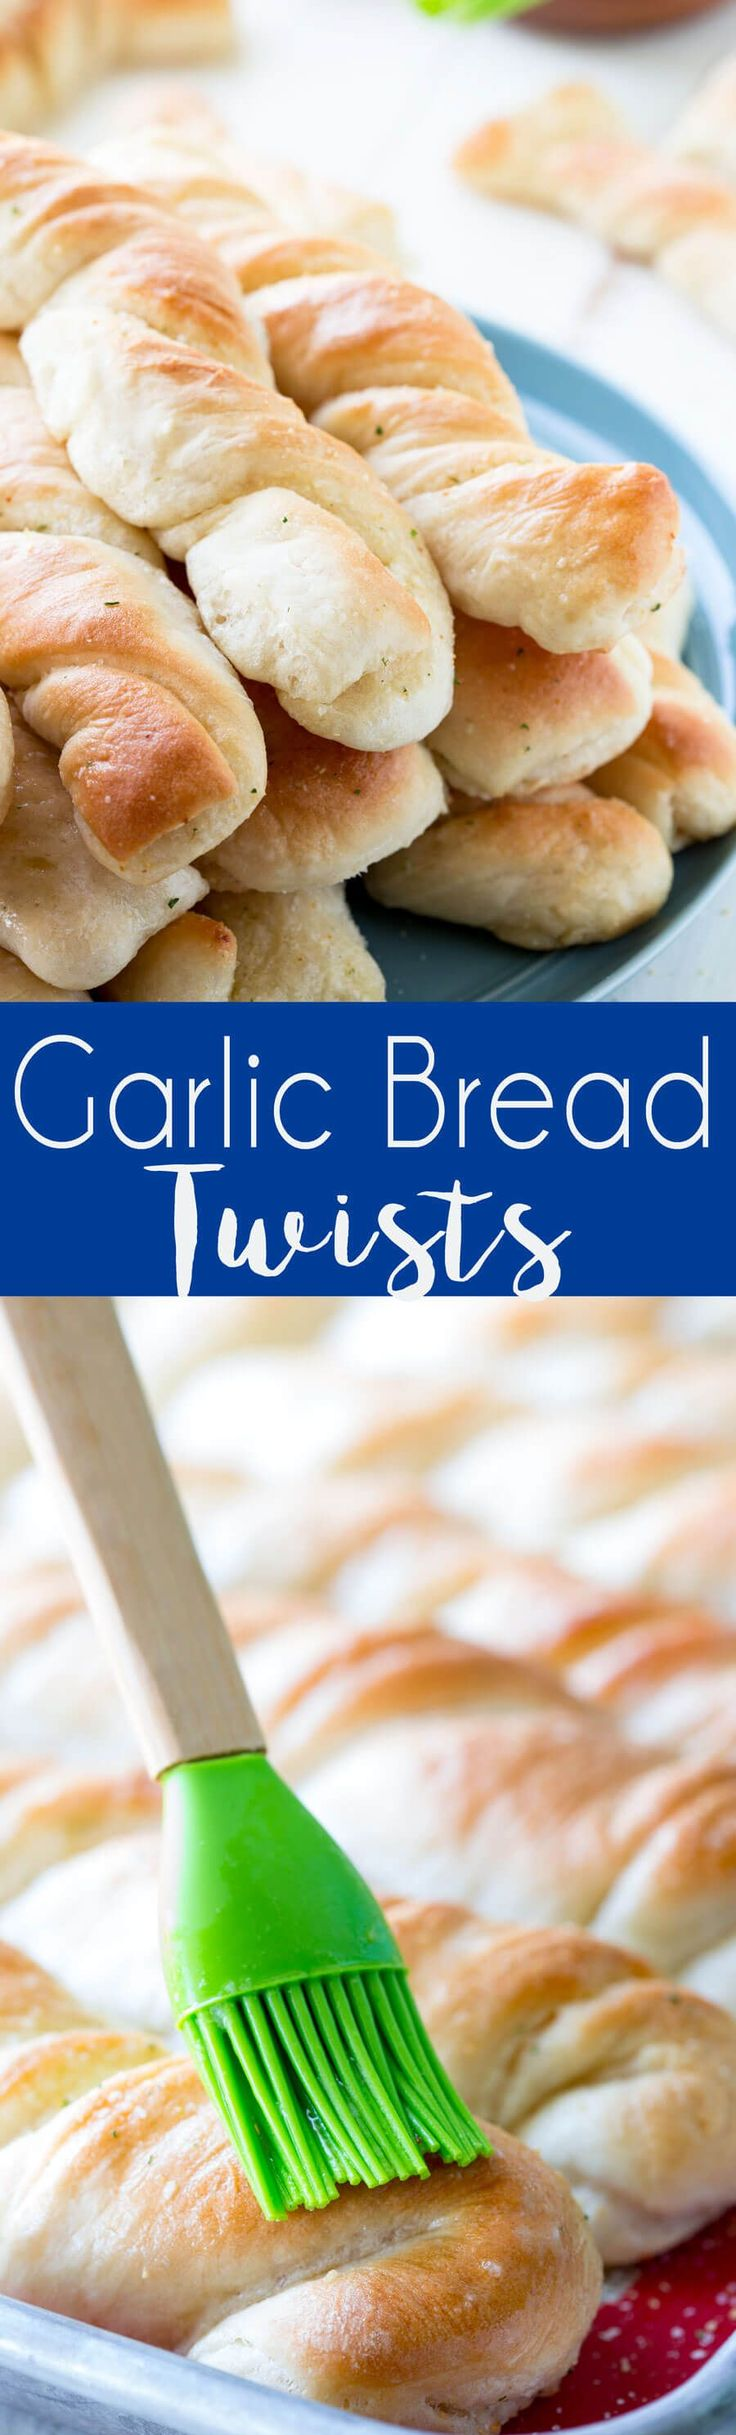 Garlic Bread Twists: Easy to make garlic bread twists, this easy dough is made in the mixer and is done in under an hour. These breadsticks are buttery, garlicky, and so delicious. You guys there is nothing quite like fresh baked bread or breadsticks. But why do they take so darn long to make? Breadsticks...Read More »